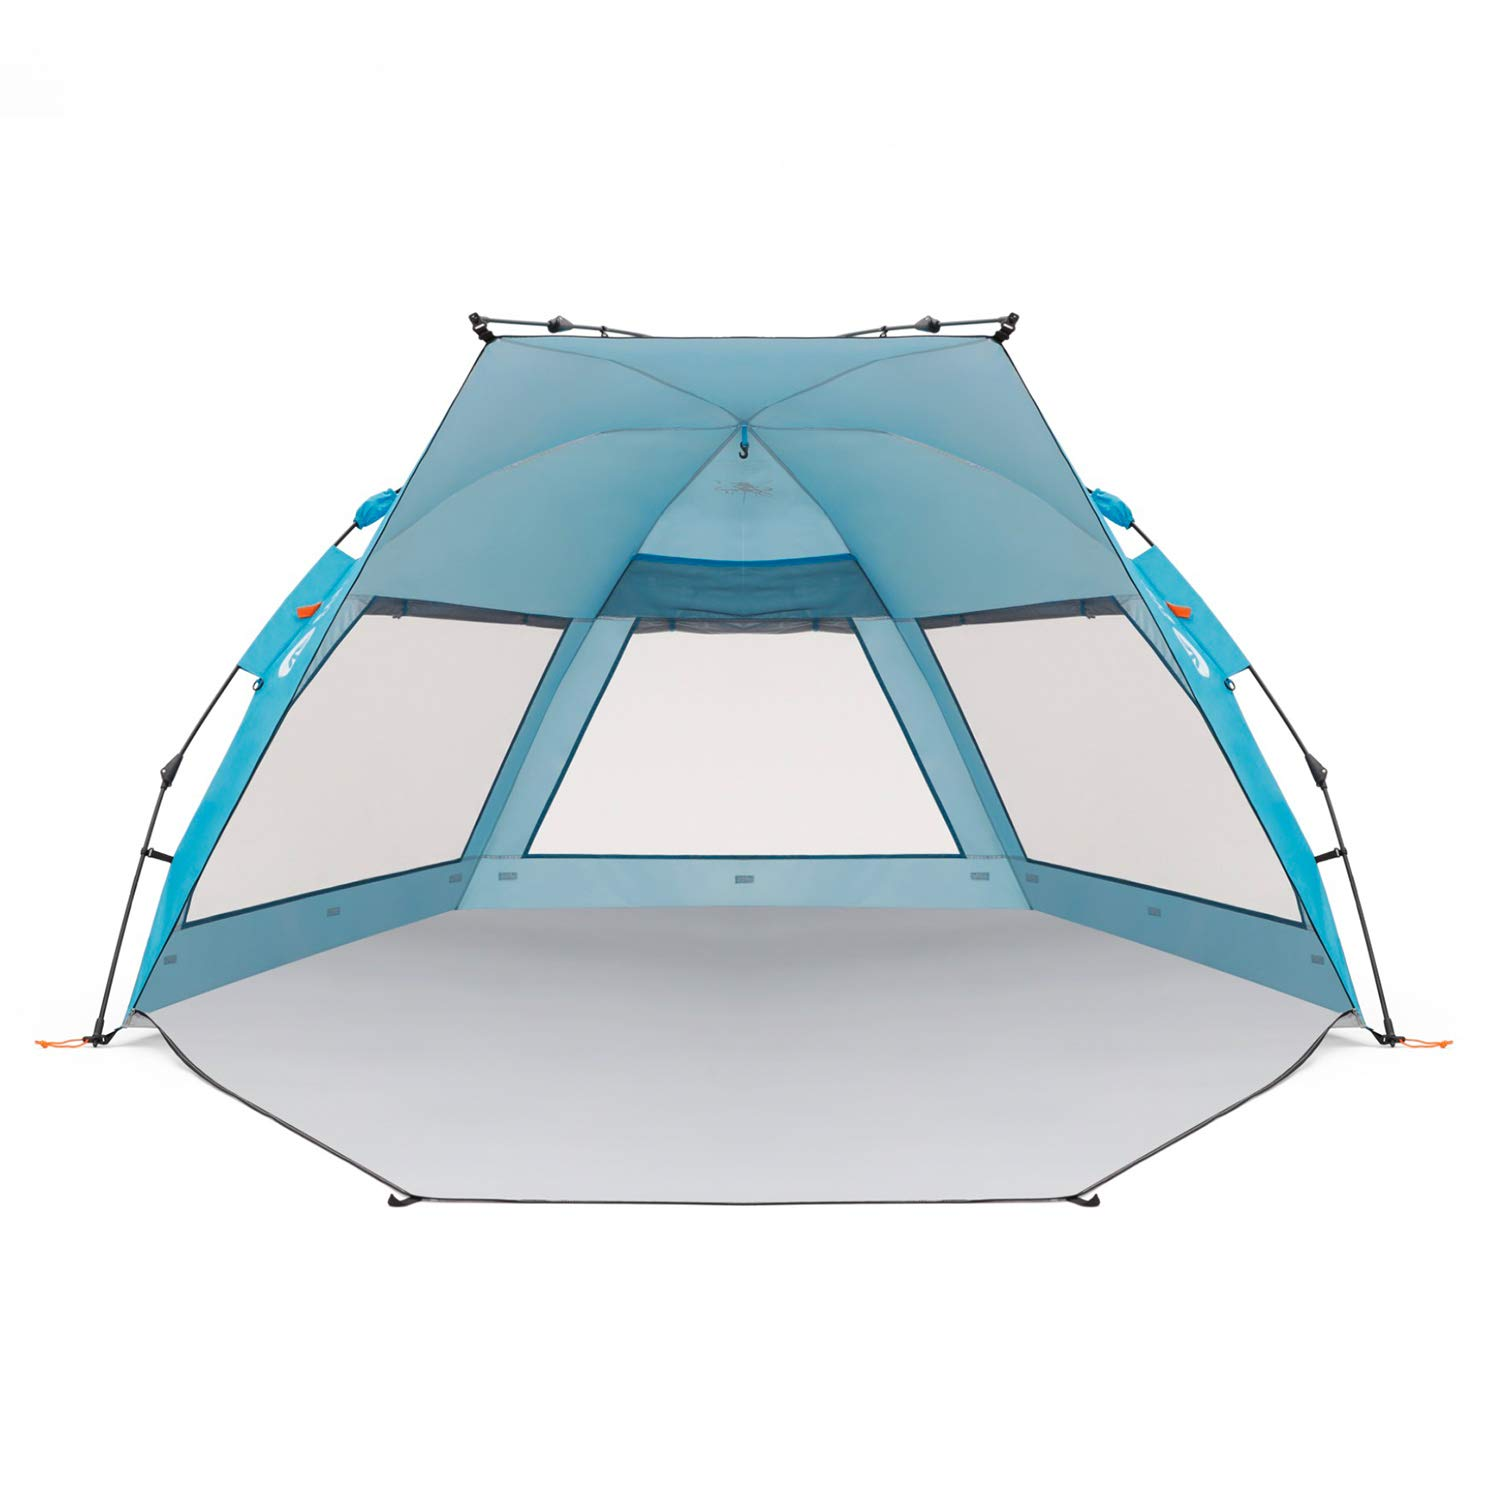 Easthills Outdoors Coastview Classic 2-4 Person Deluxe XL Beach Tent Pop Up Sun Shelter Double Silver Coating Sun Shade Instant Tent for Beach with Carrying Bag Pacific Blue by Easthills Outdoors